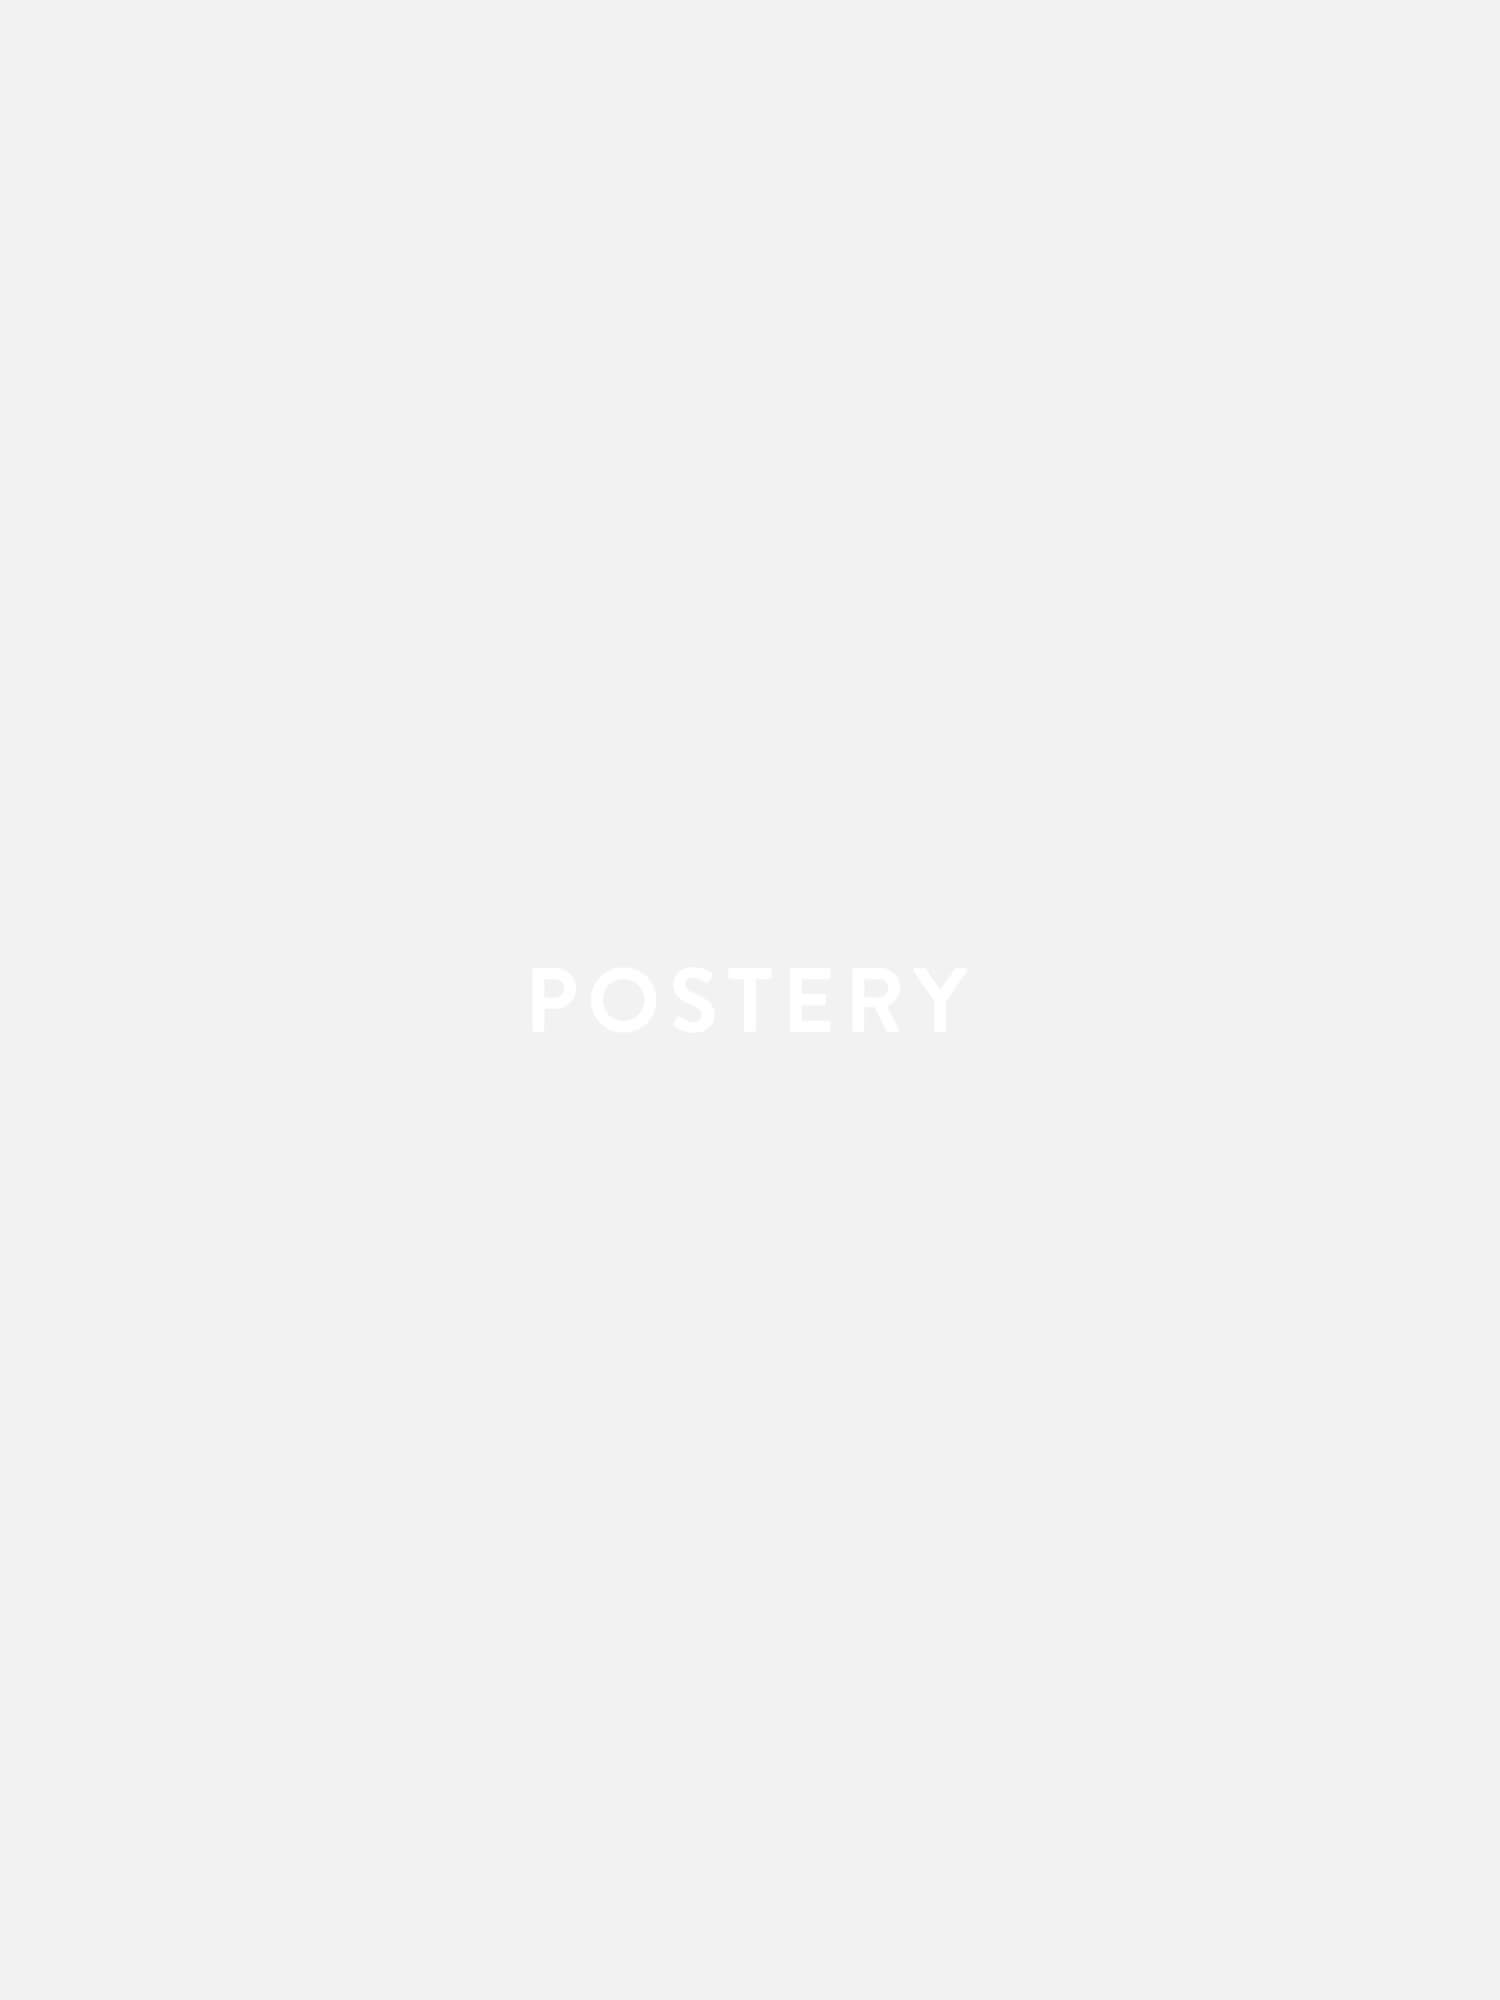 Everything I Do Poster